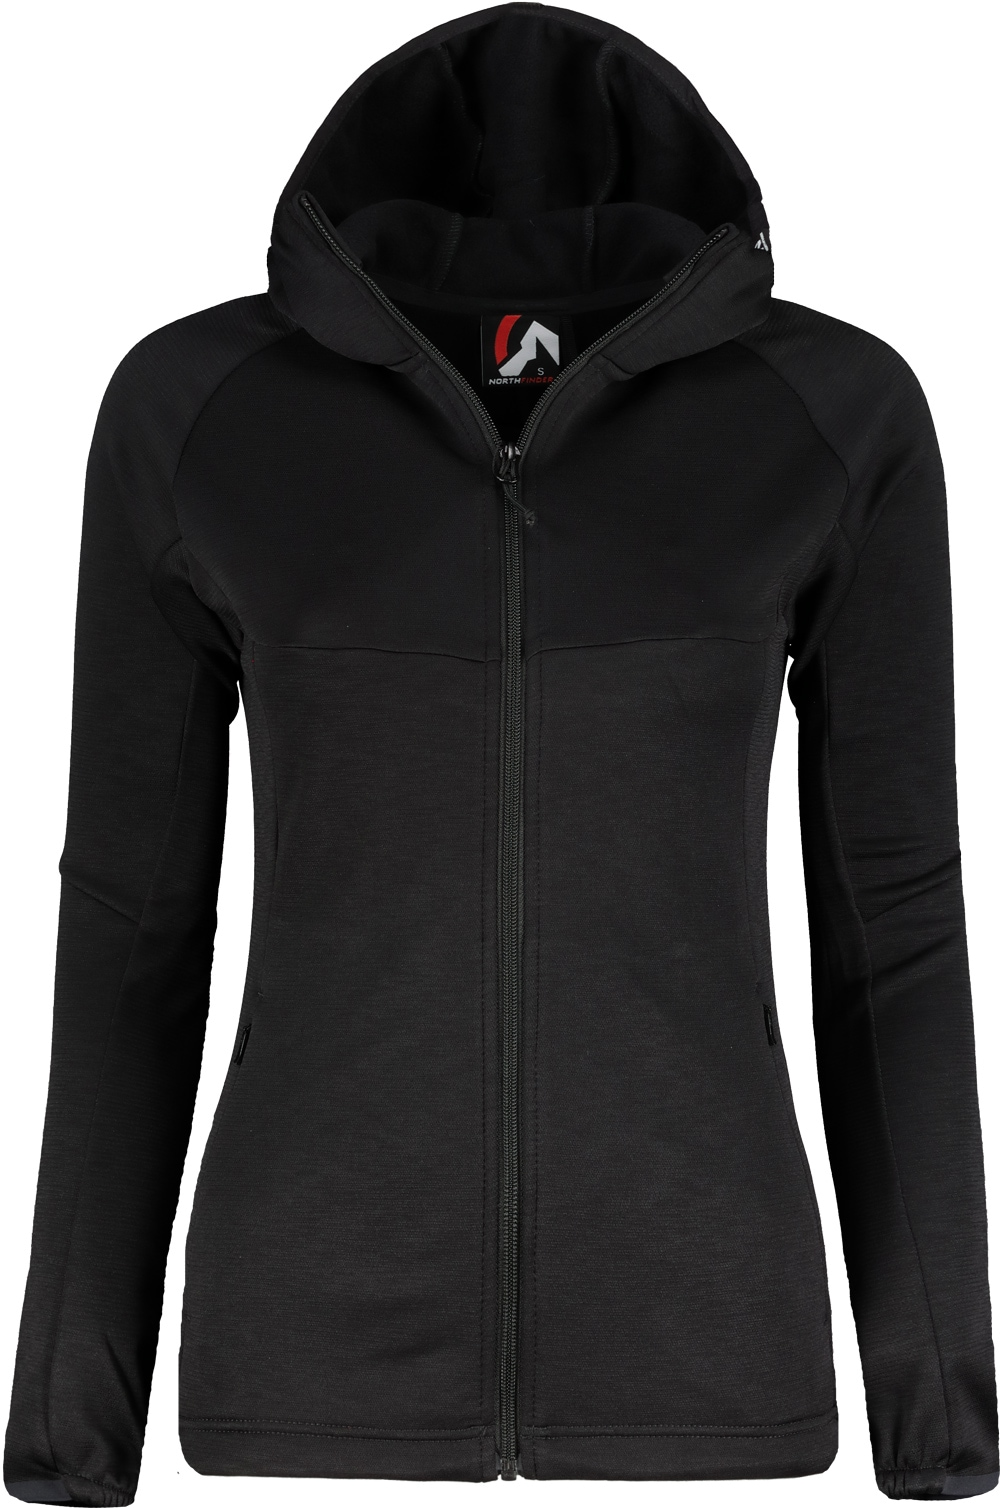 Women's outdoor hoody NORTHFINDER NOEMI